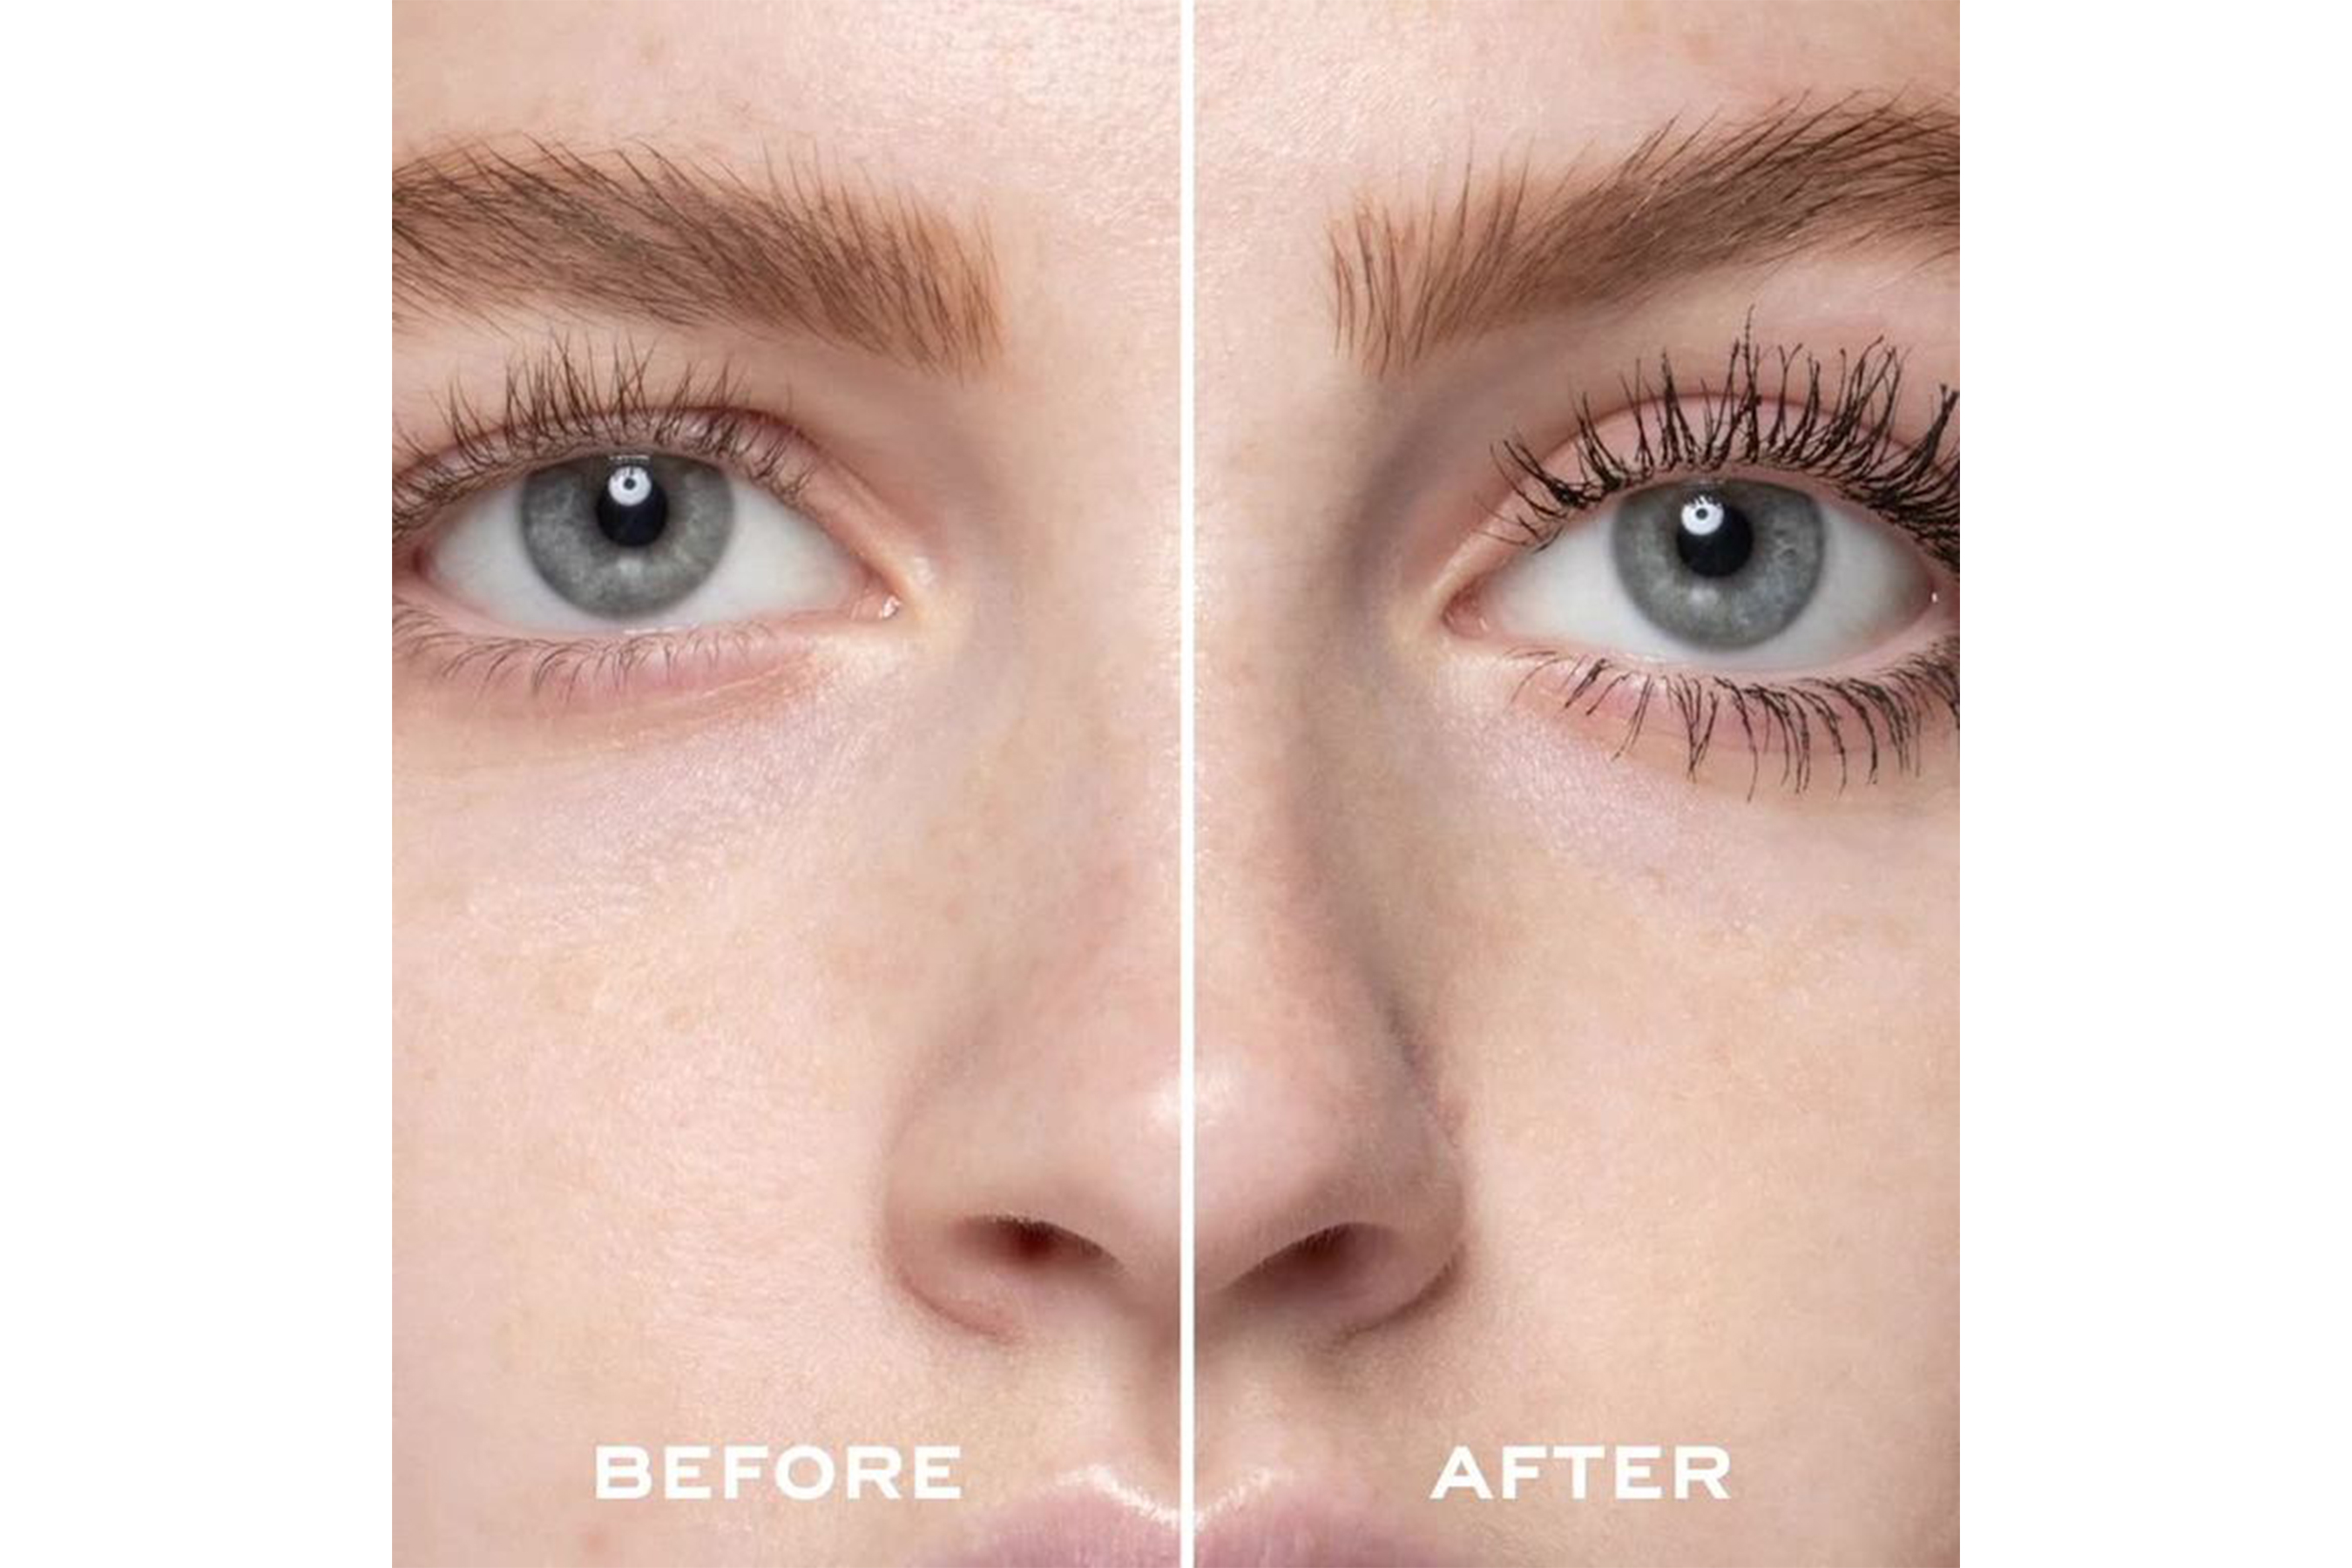 introducing: marc jacobs beauty at lash'd lengthening and curling mascara